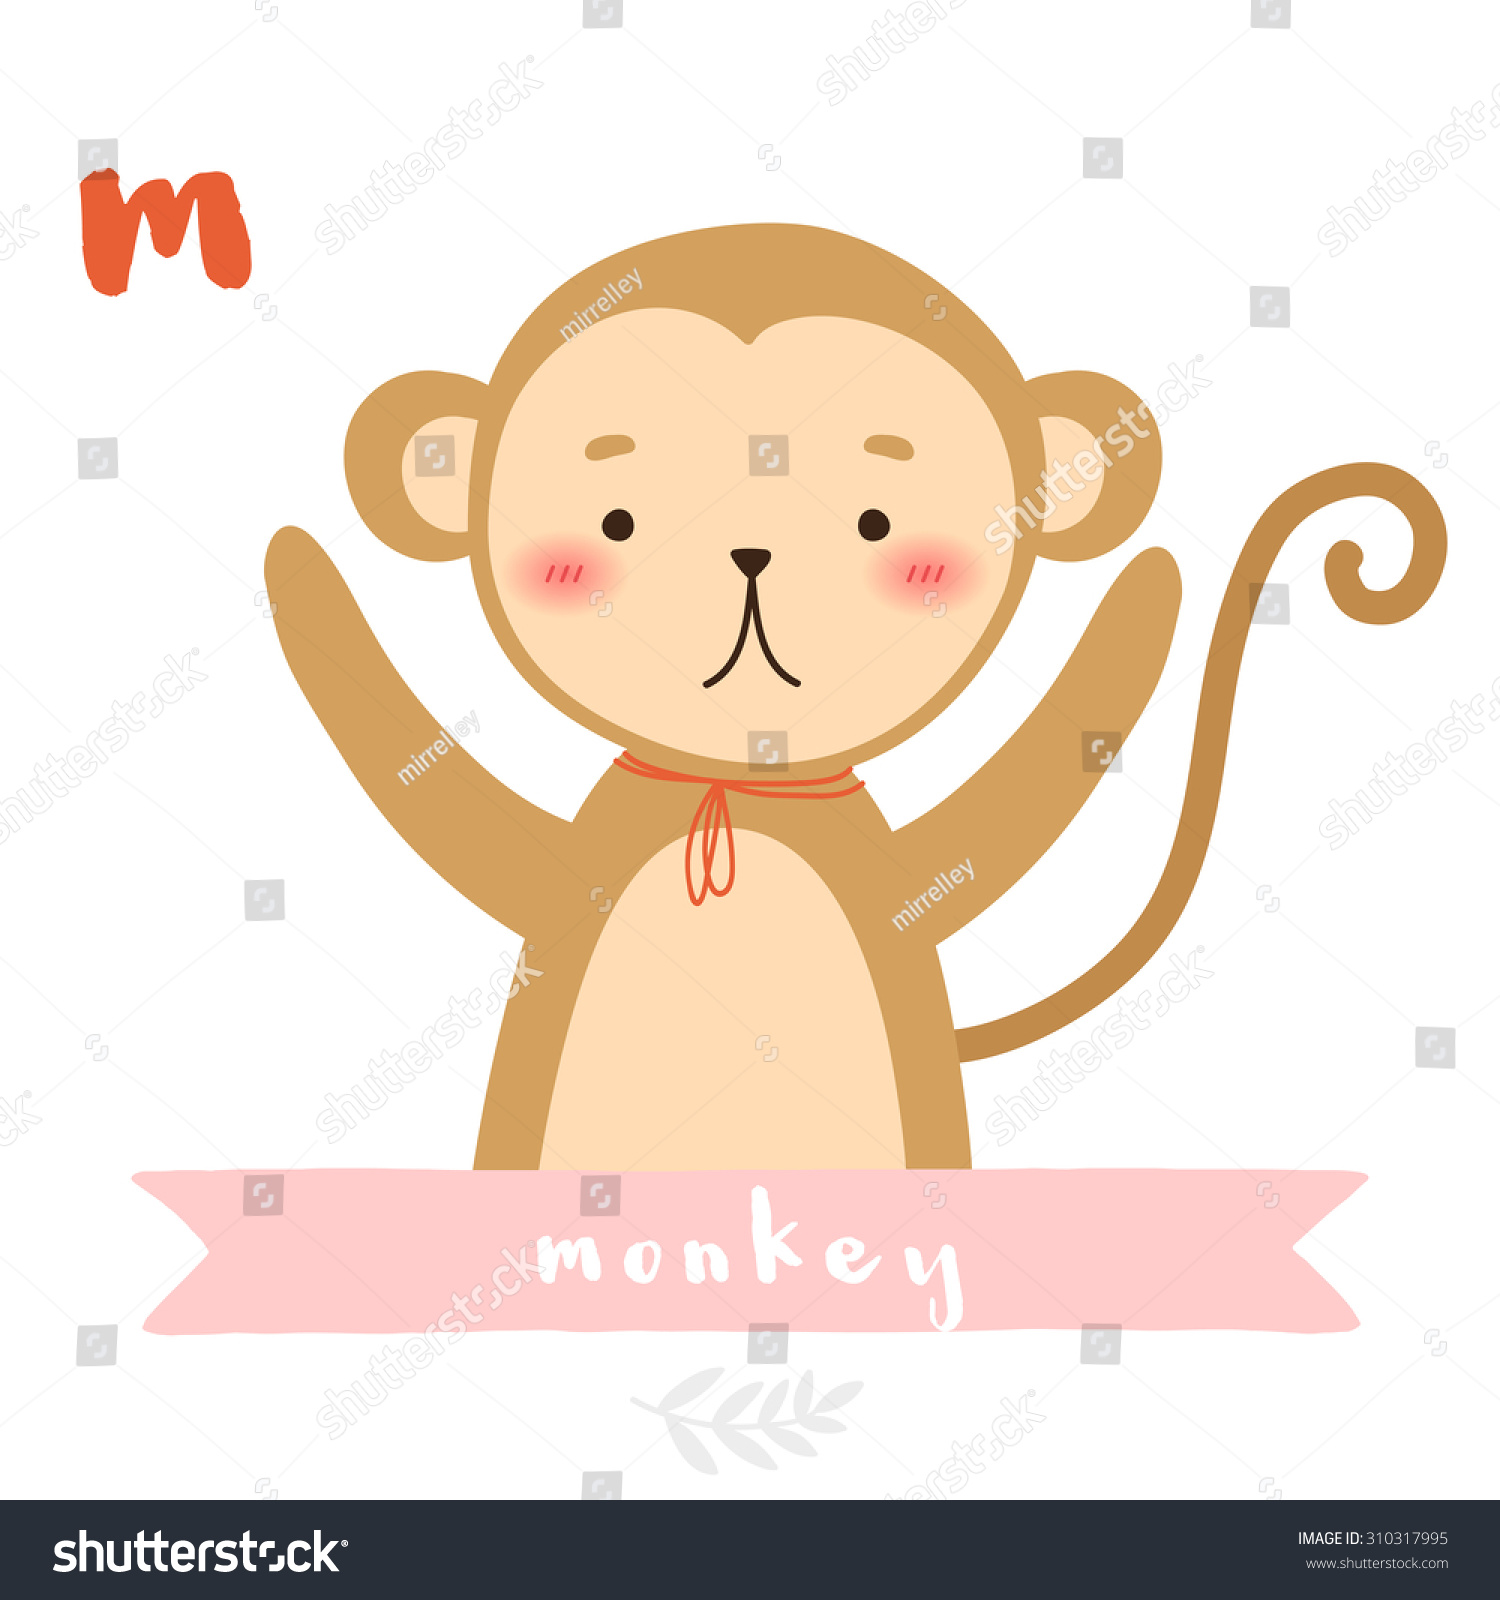 Illustration Cute Cartoon Monkey Ribbon On Stock Vector 310317995